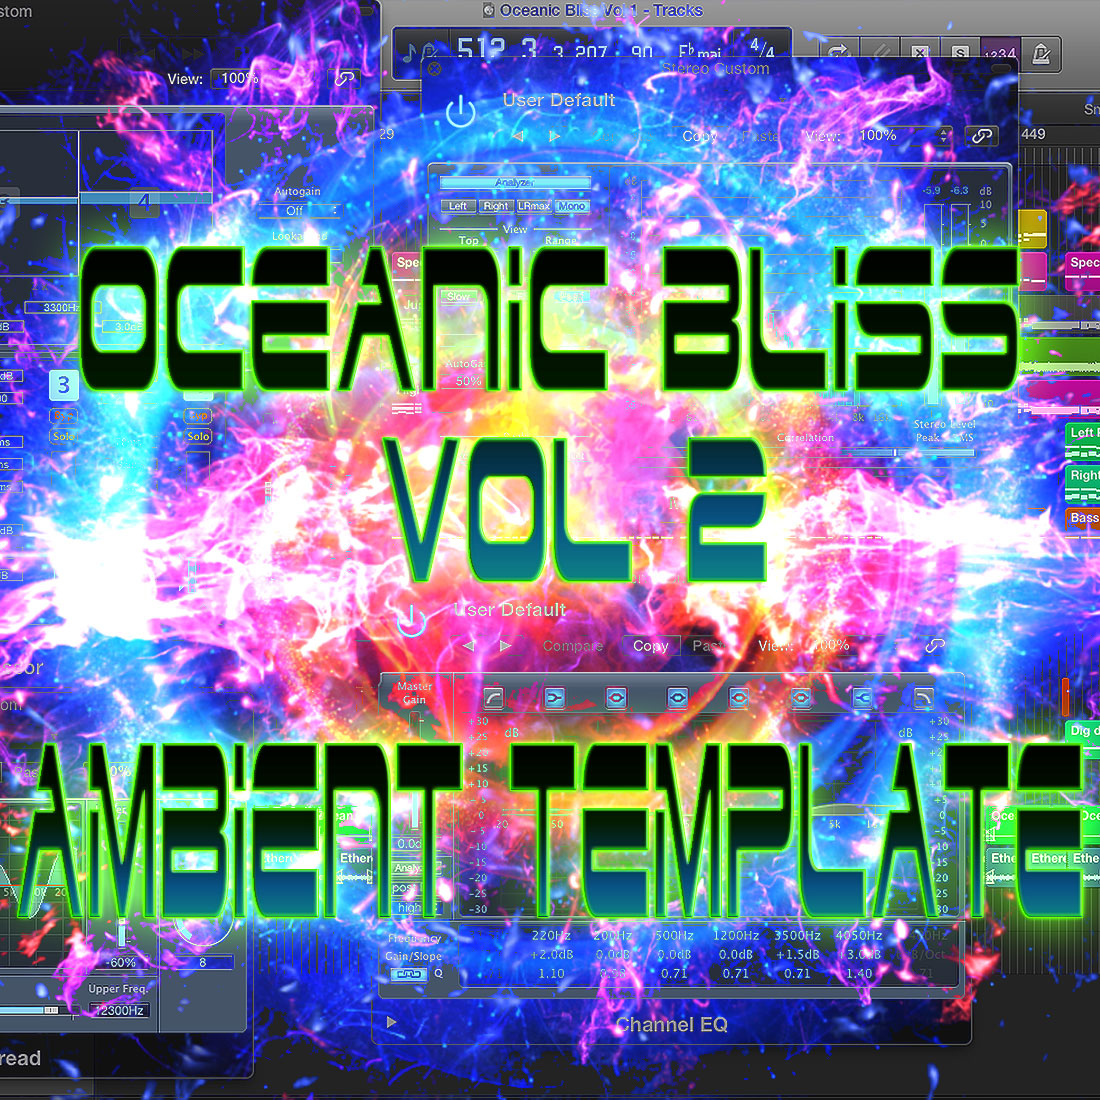 Oceanic Bliss Logic Pro X Ambient Template